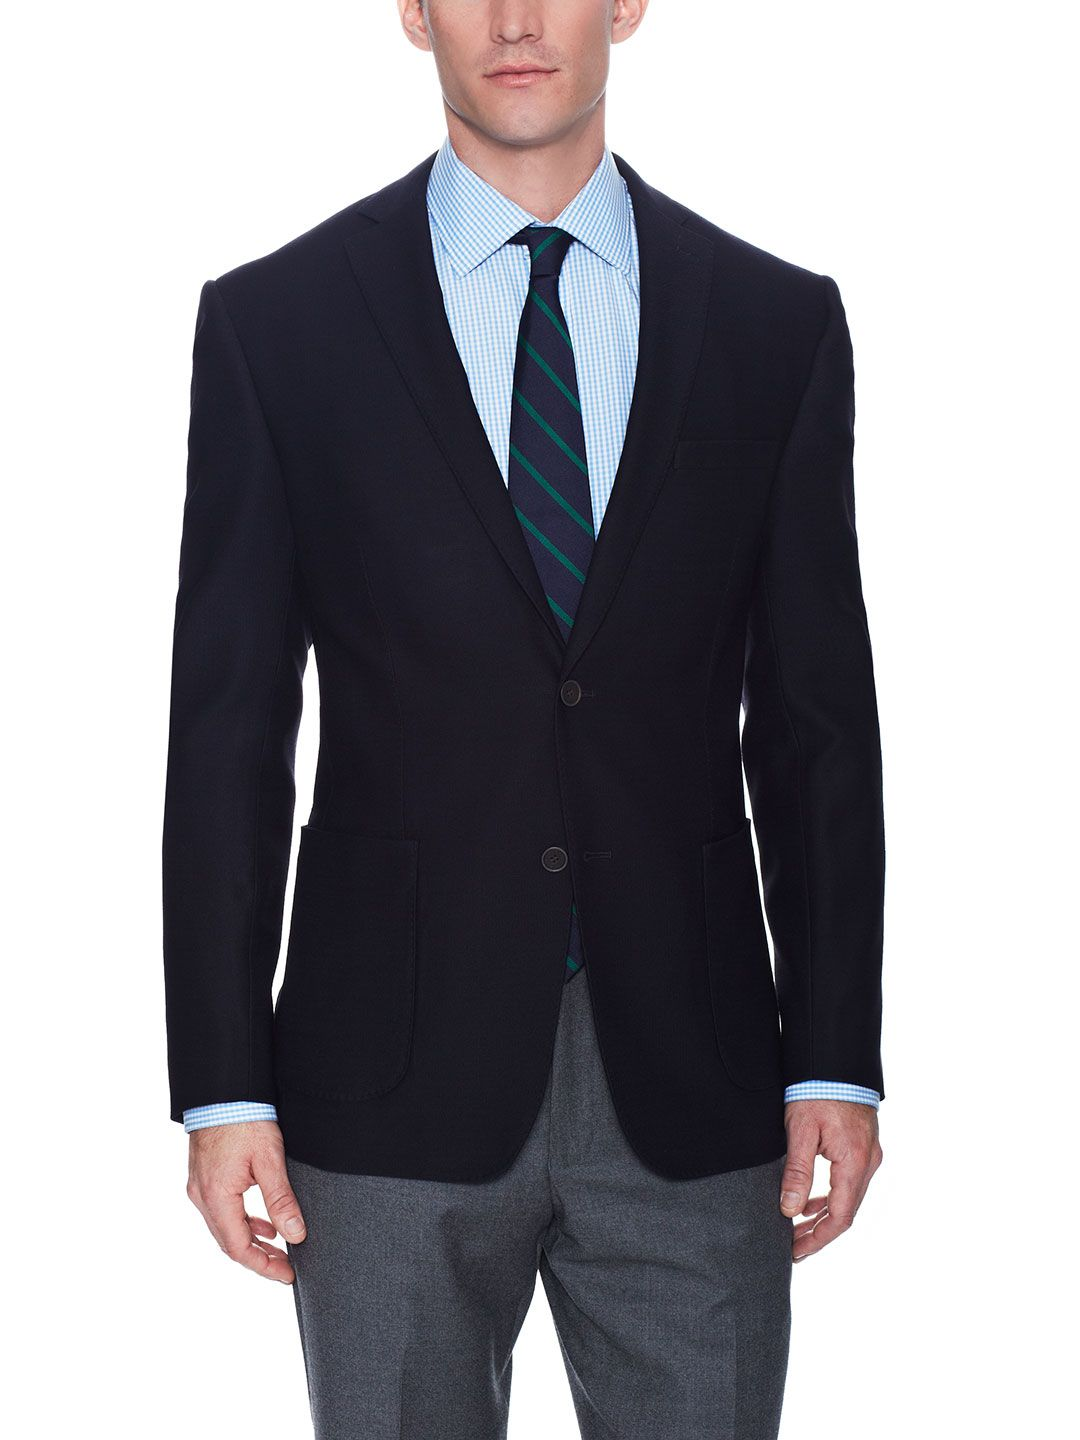 Knit Sportcoat Sportcoat, Mens outfits, Tailored blazer